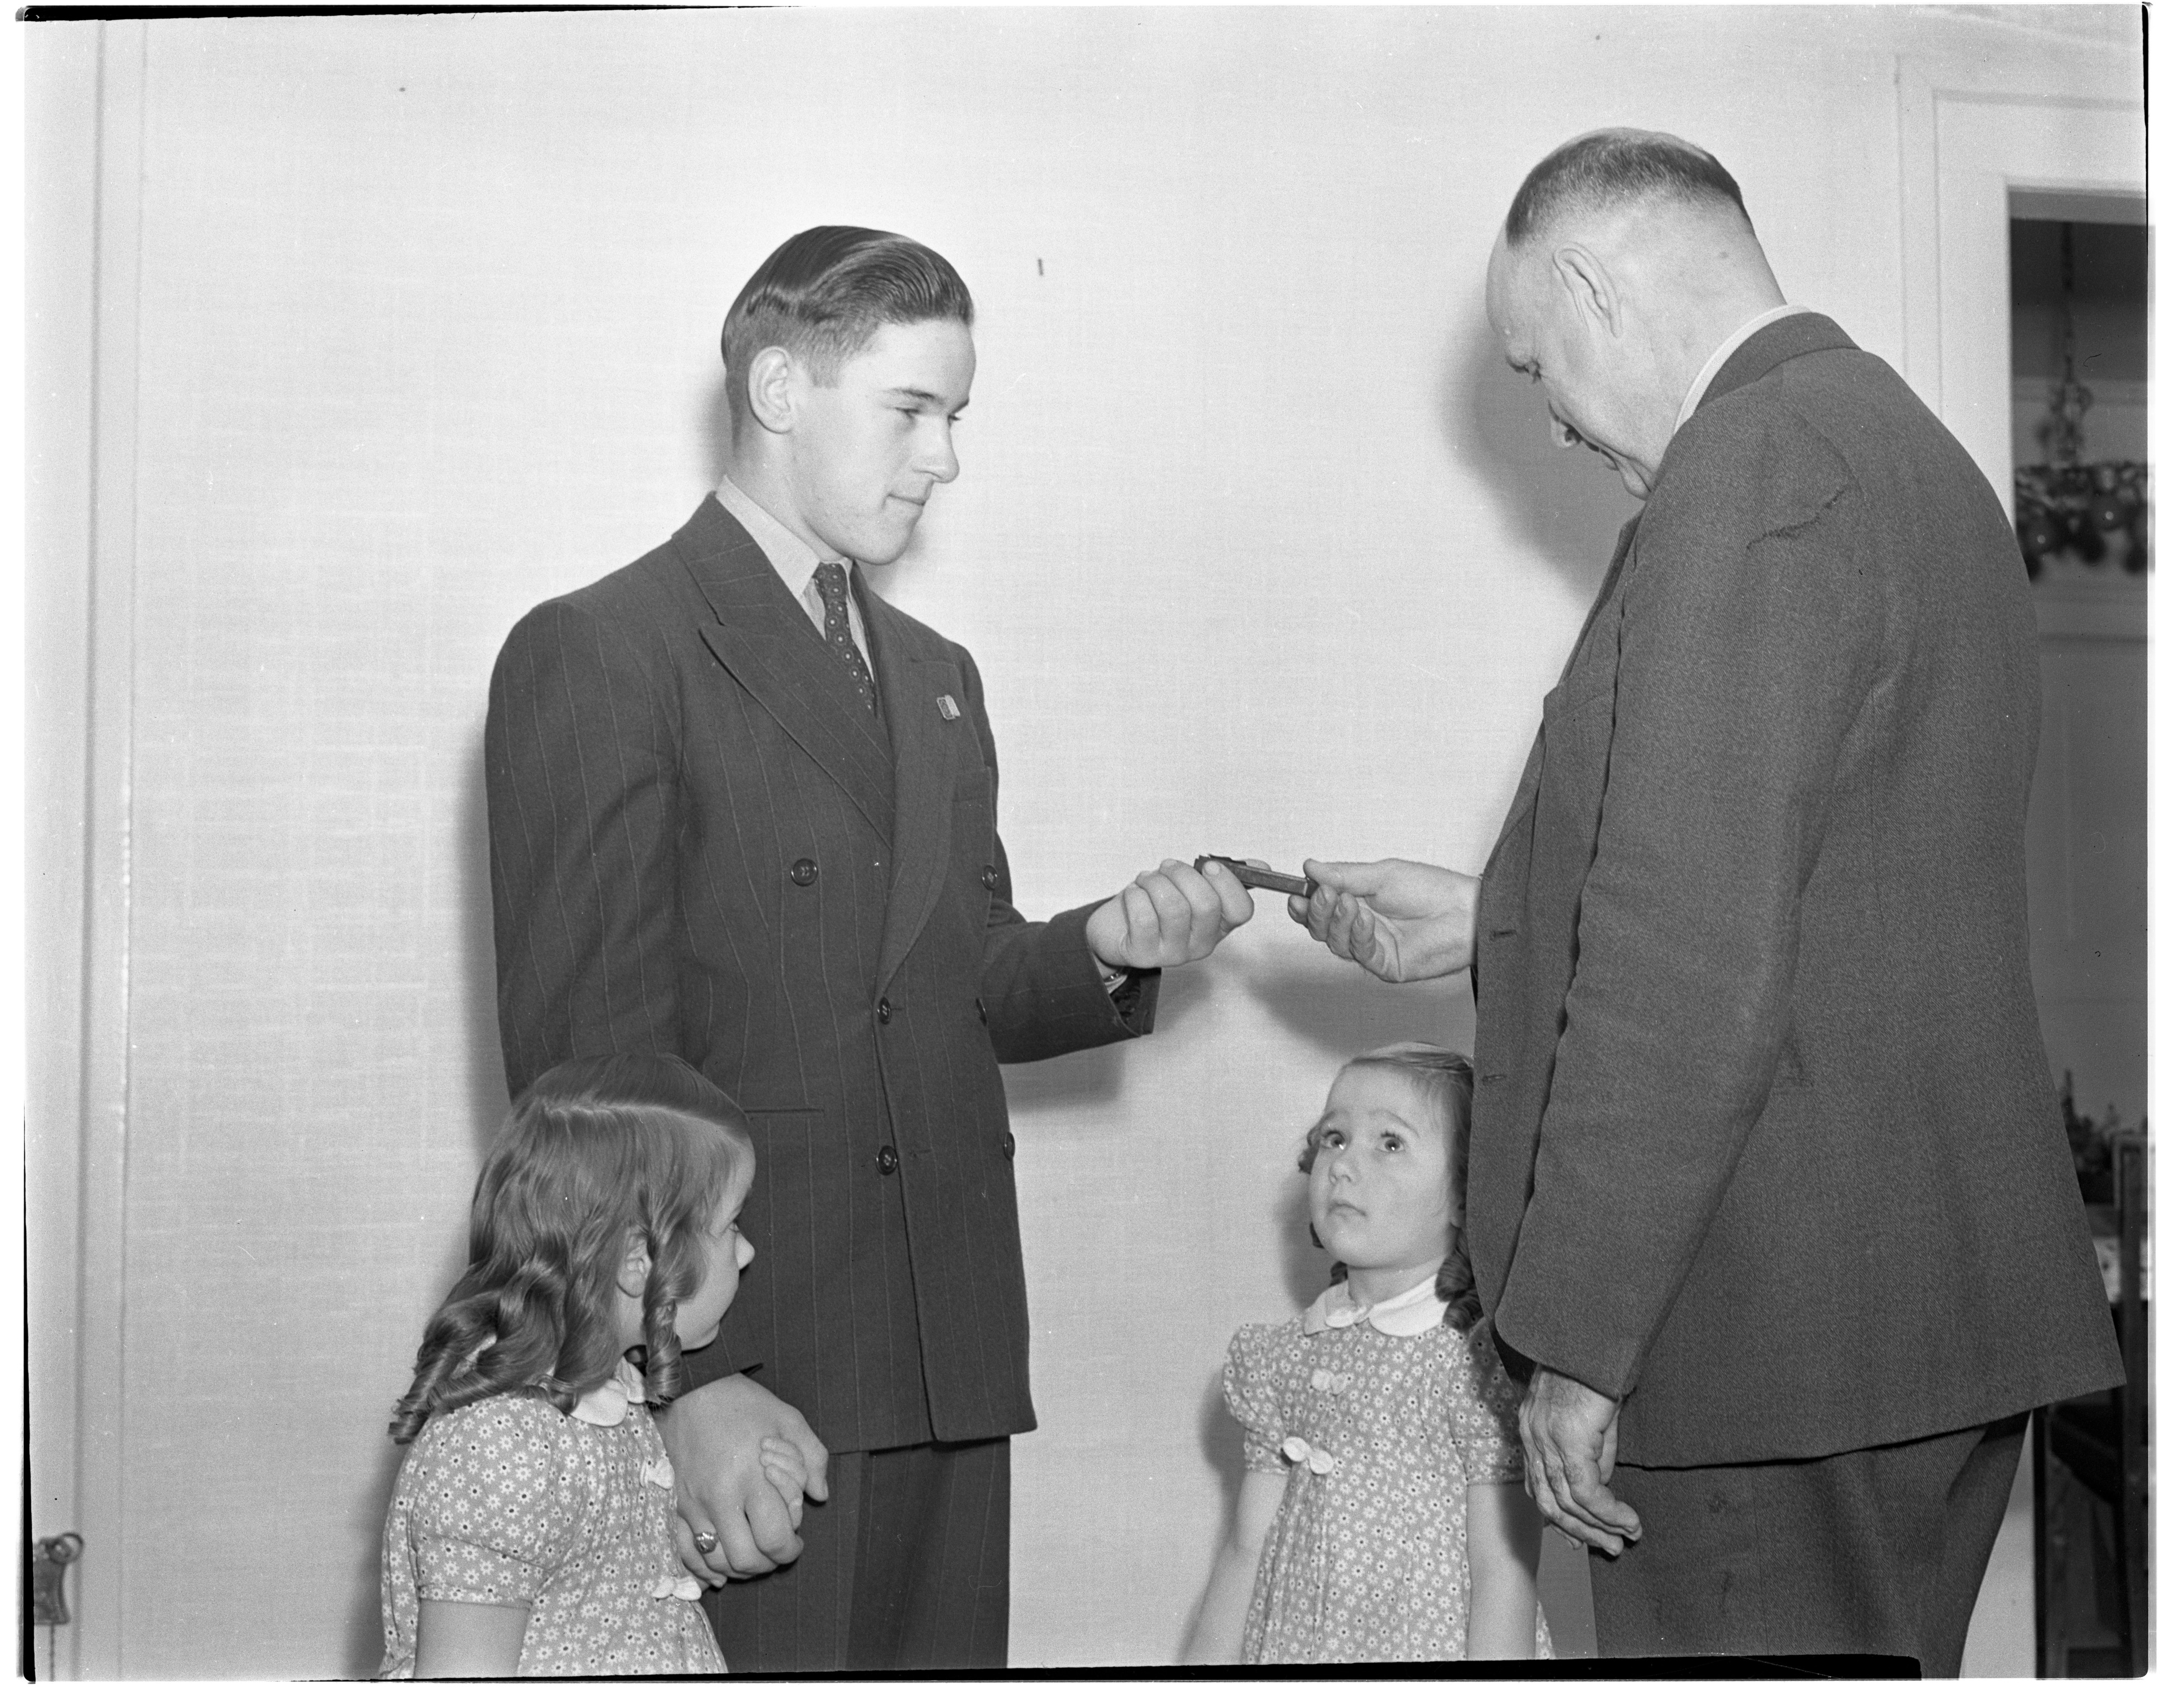 Robert Mast Receives 4-H Medal from Harold Osler, November 1938 image